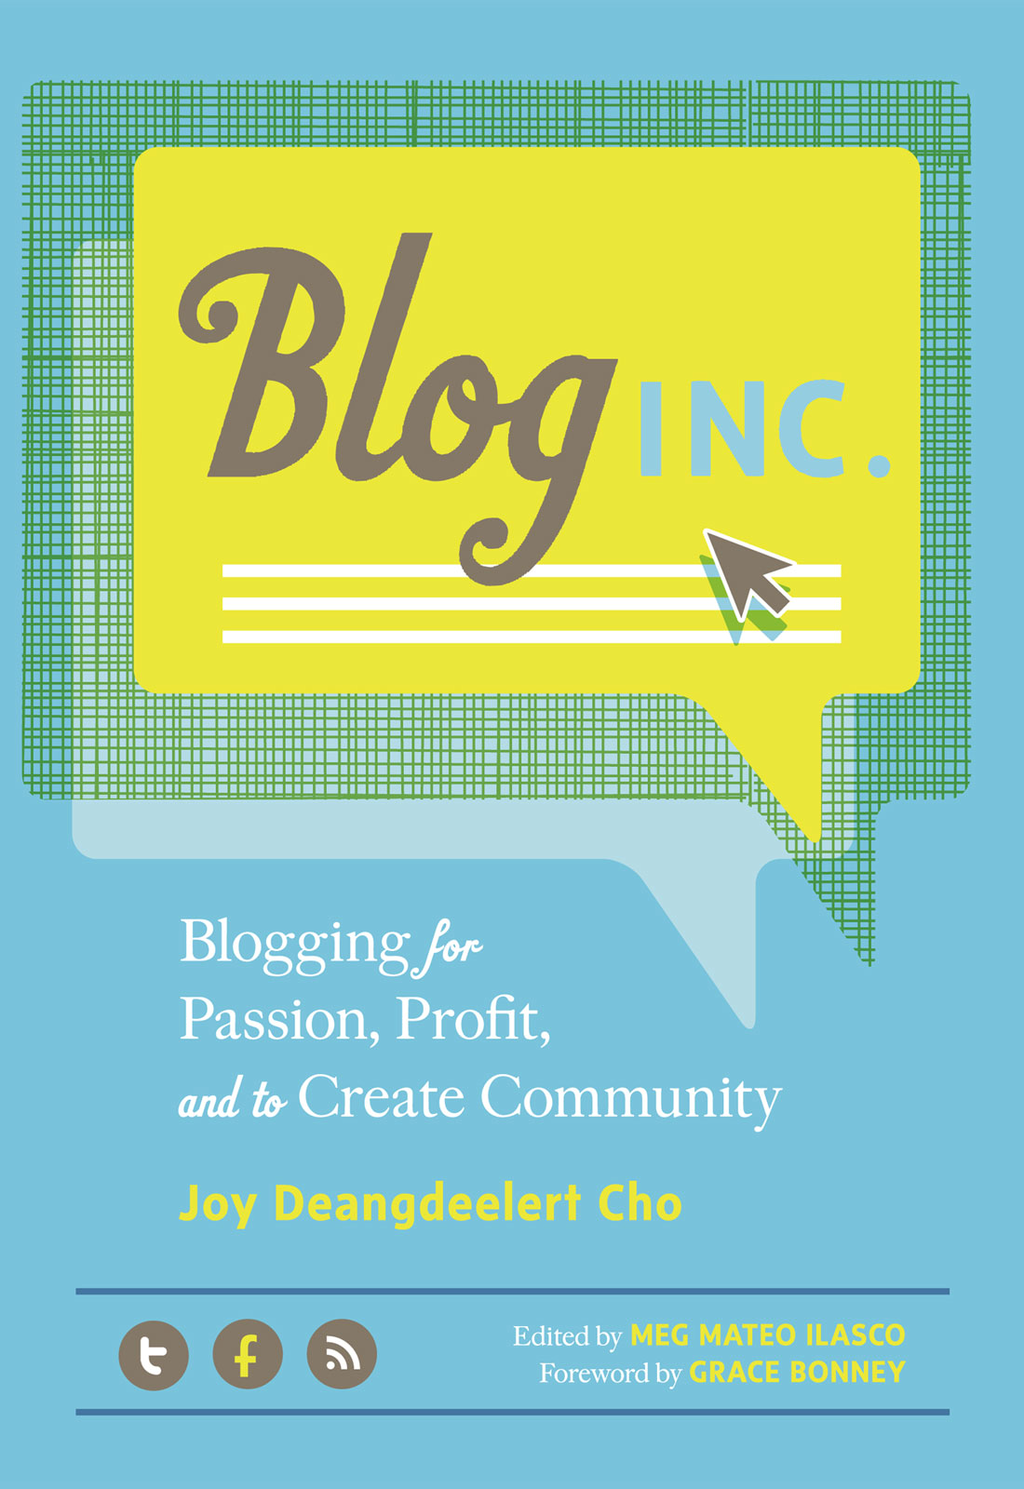 Blog, Inc. By: Joy Deangdeelert Cho